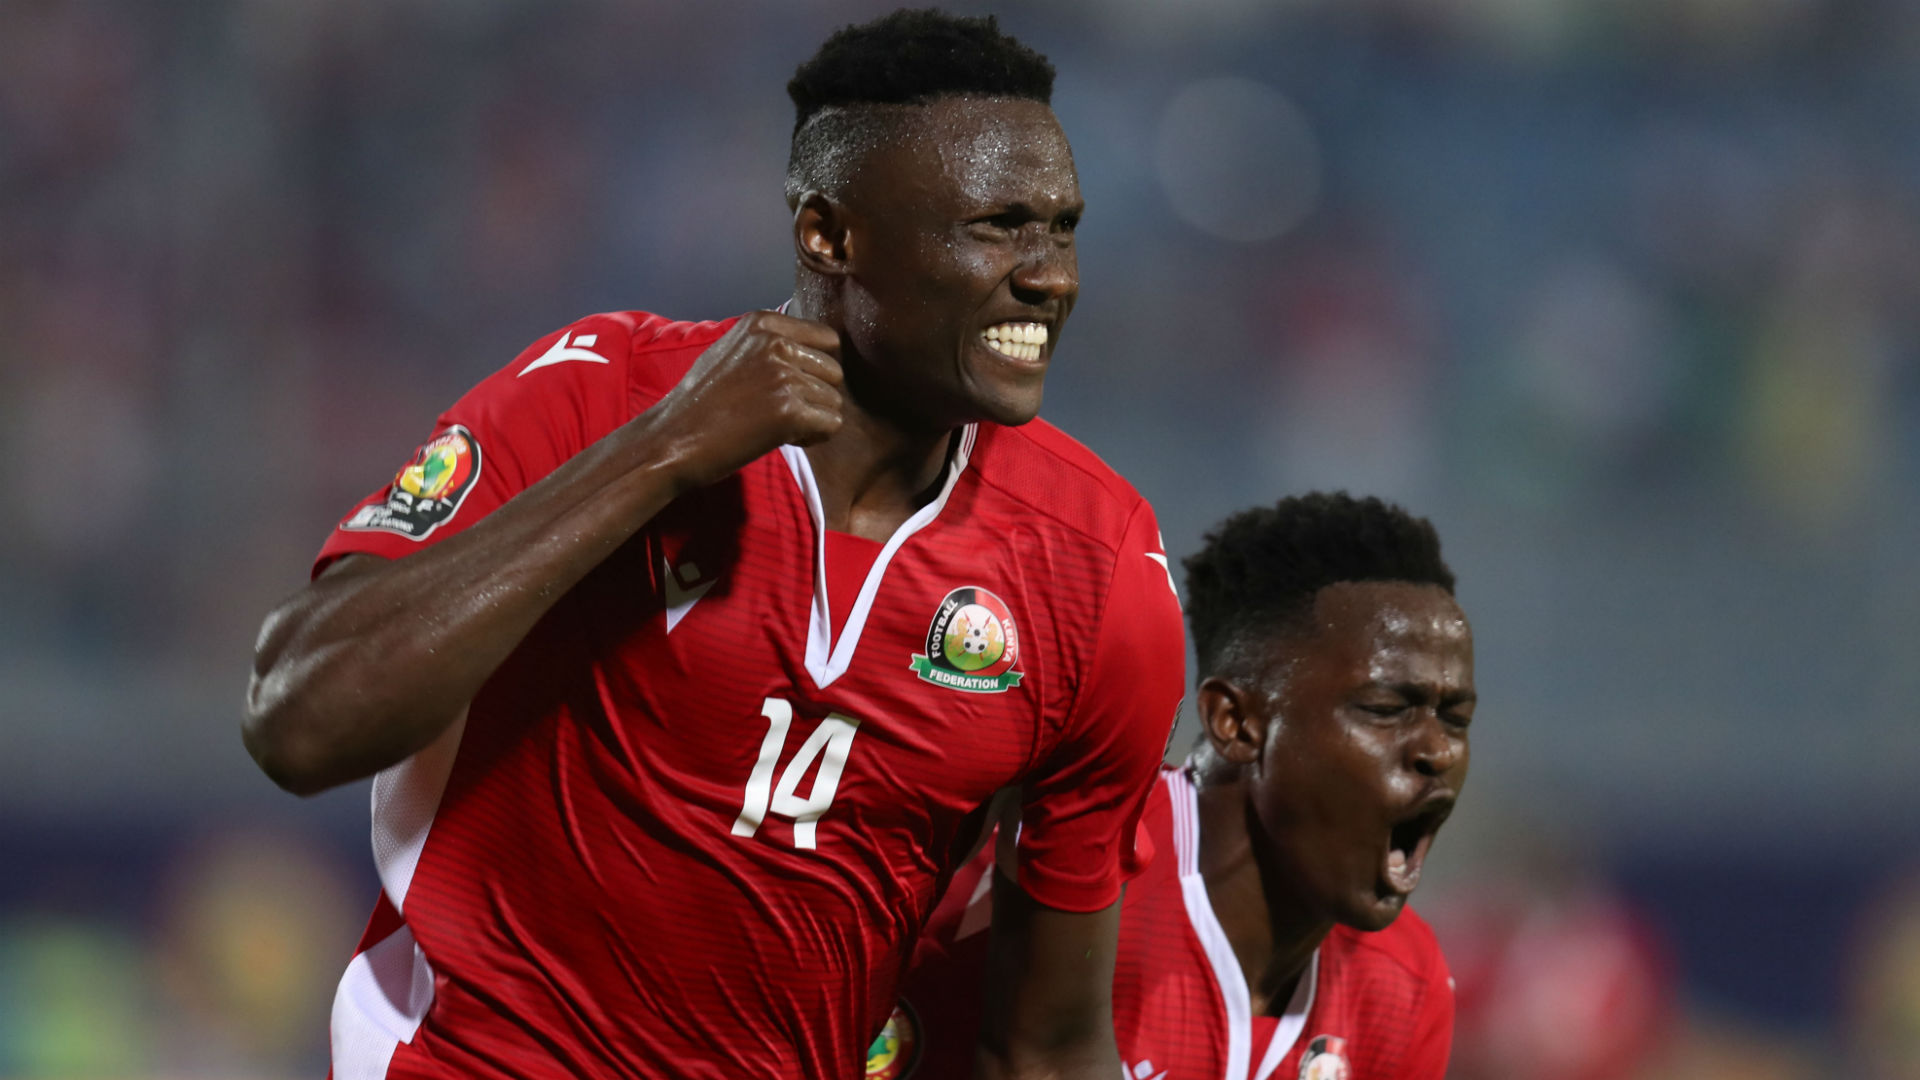 AFCON: Why Harambee Stars could still advance to the knockouts